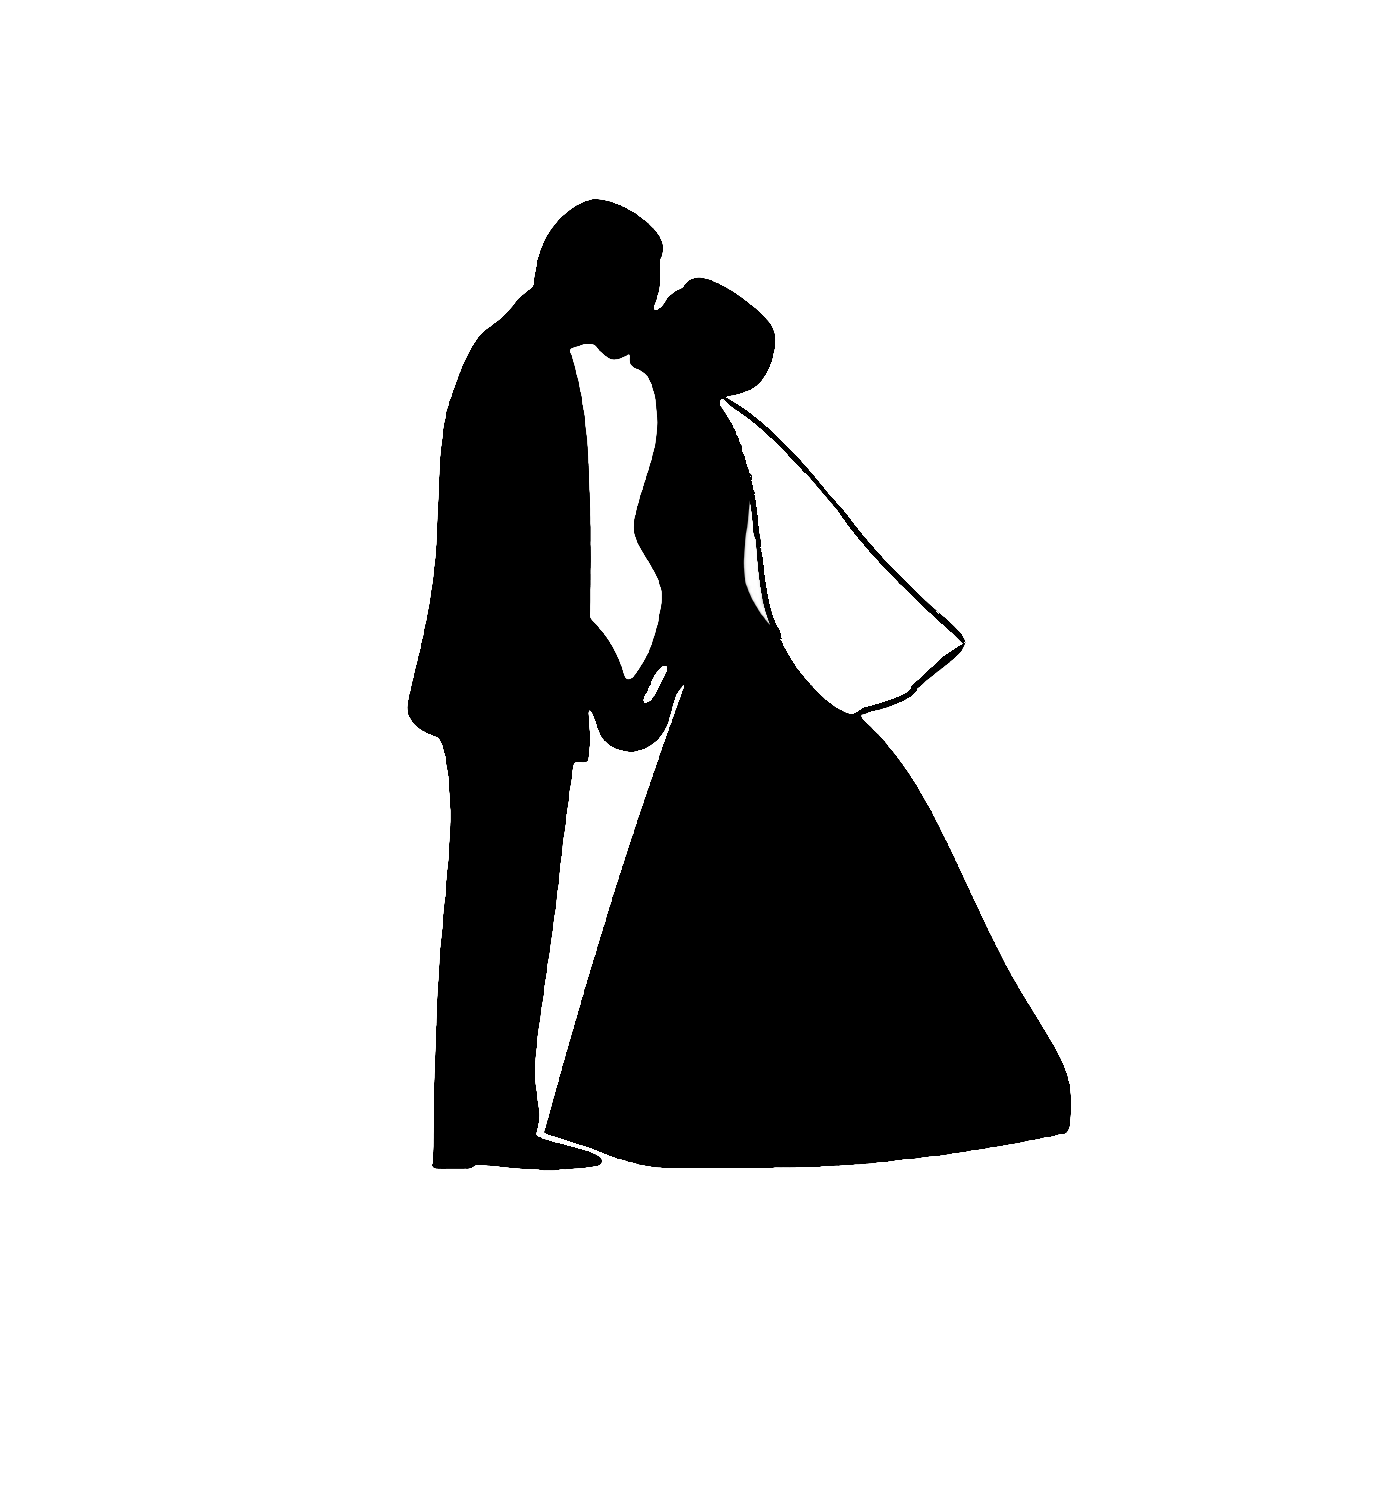 bridal silhouette clip art at getdrawings com free for personal rh getdrawings com free christian wedding clipart images free wedding cake clipart images